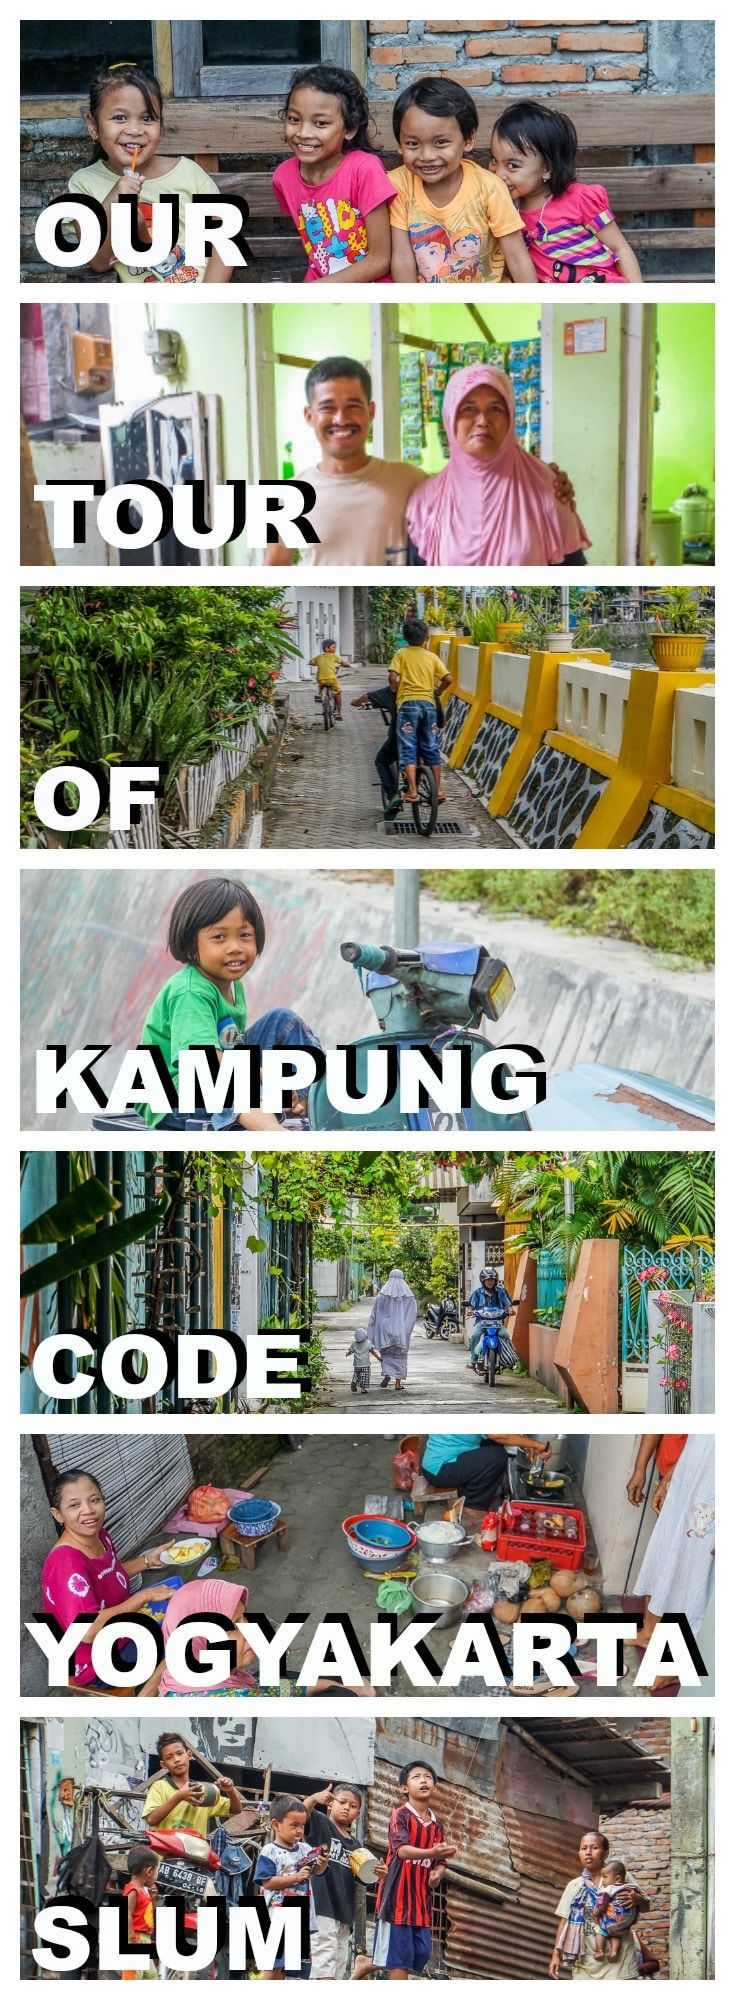 Kampung Code is a former slum neighbourhood in Yogyakarta, Central Java, Indonesia. Join us on this alternative village tour where we meet with the locals. | Visit Java | Top Tours in Java | Top things to do on Yogyakarta | Explore Yogyakarta | Off the beaten track in Java | Where to visit in Java | Backpacking Java | Best of Java | Informative tour in Yogyakarta | Local tours in Java | Top tips for Java | What to do in Yogyakarta | Tips for Java travel